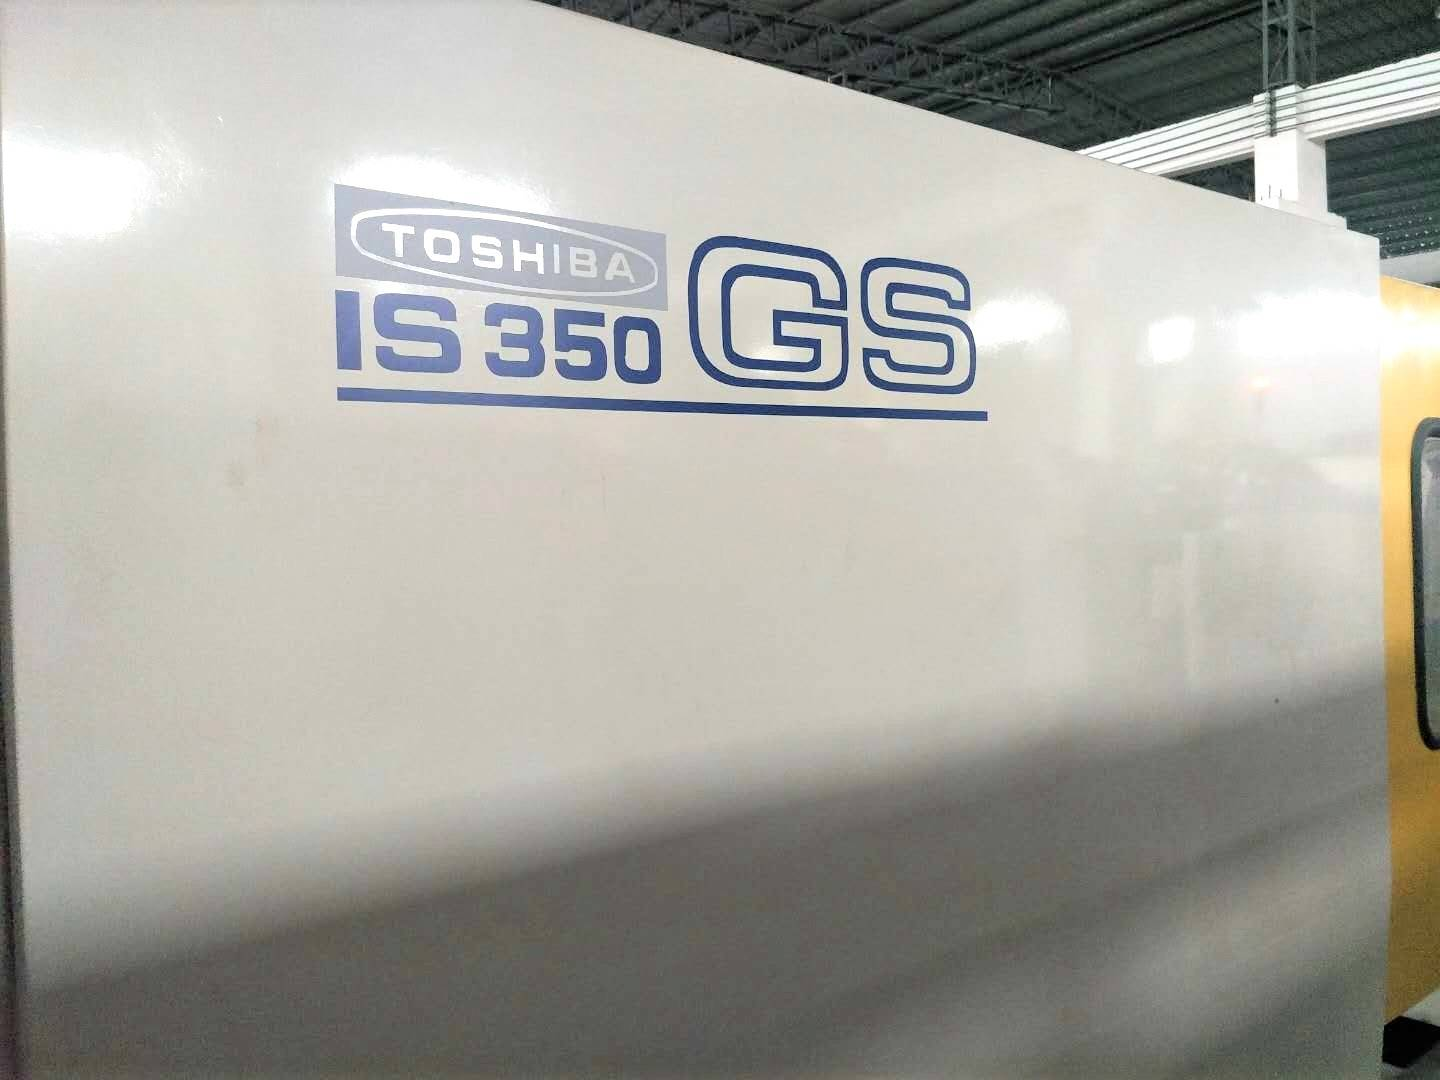 Toshiba 350t IS350GS Used Injection Molding Machine Featured Image